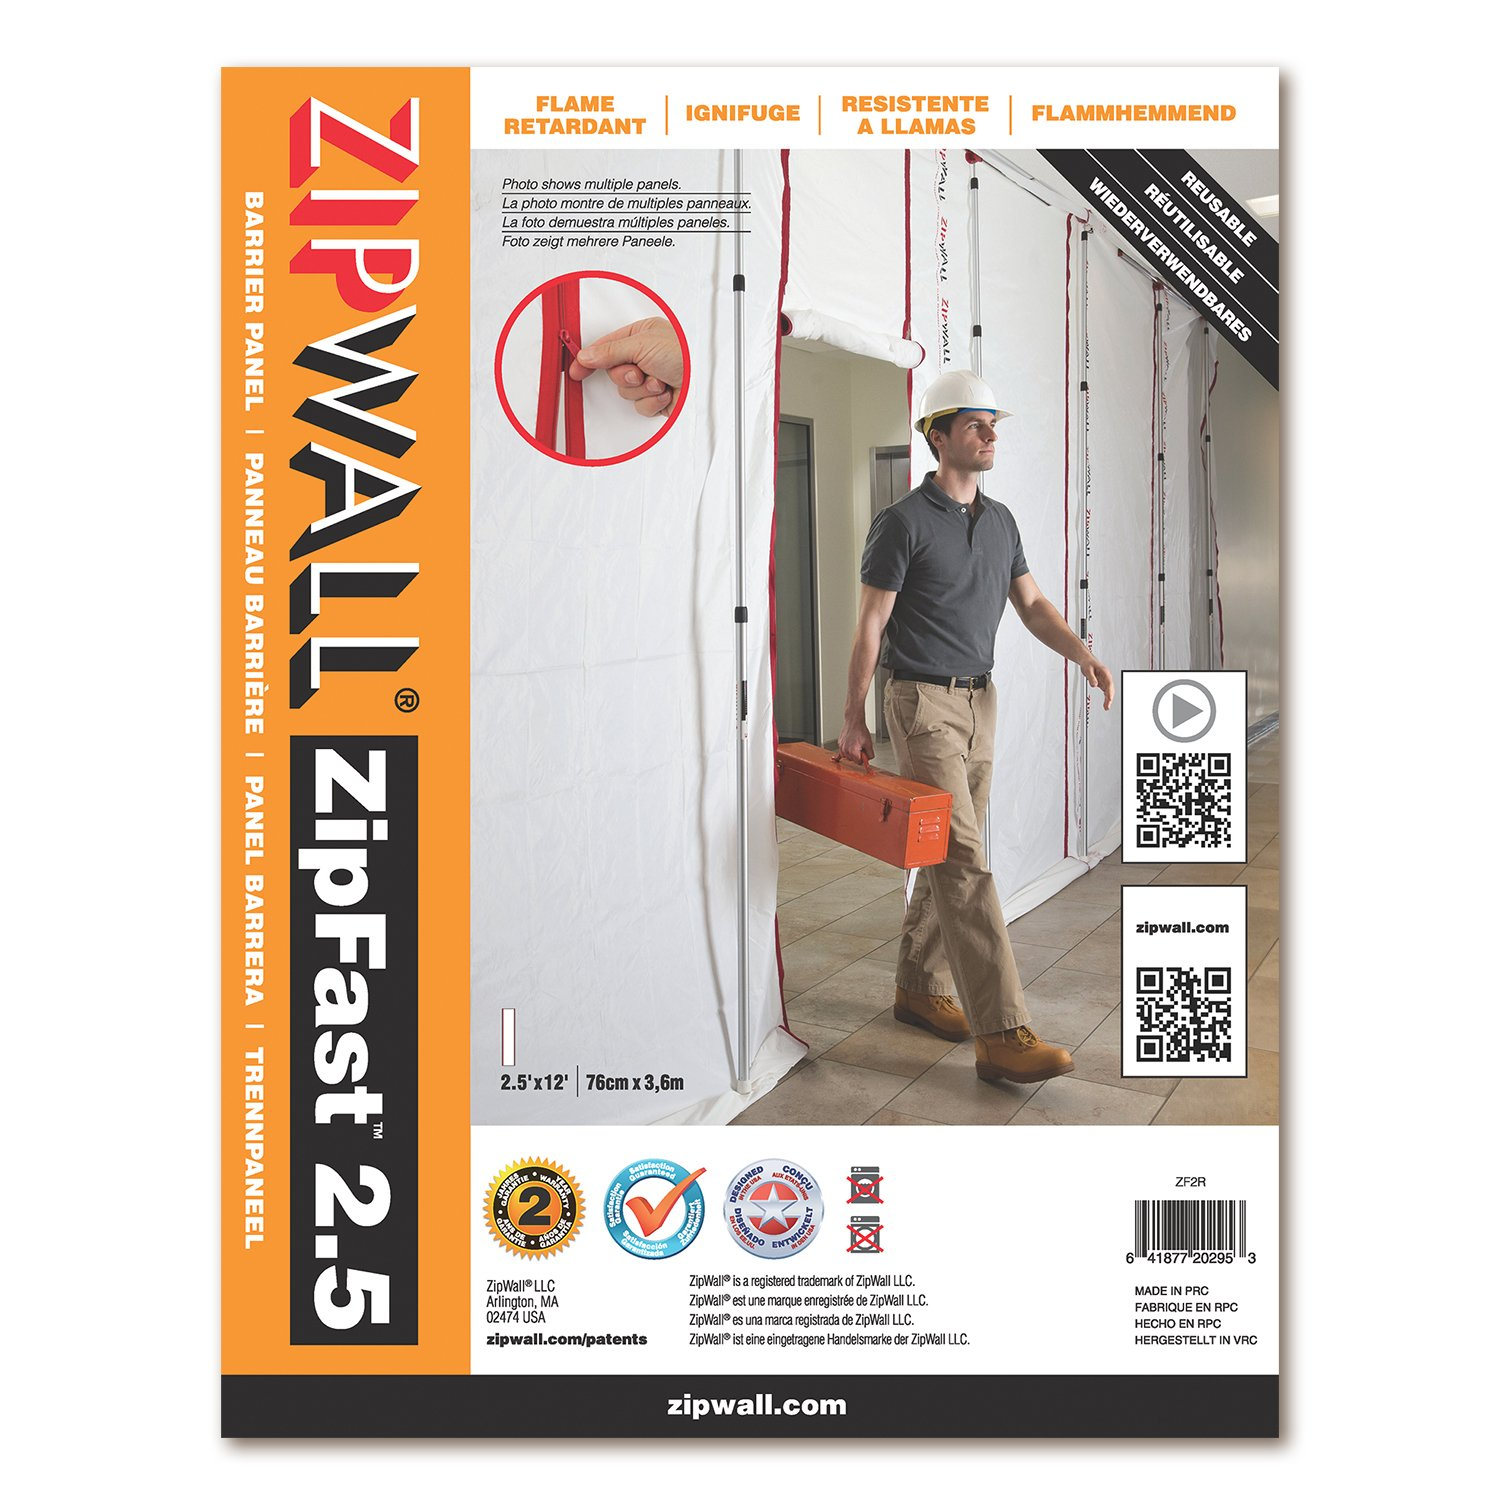 Amazon.com: ZipWall ZipFast Reusable Barrier 2.5 Panel, Flame Retardant for Dust Barriers, ZF2R: Home Improvement